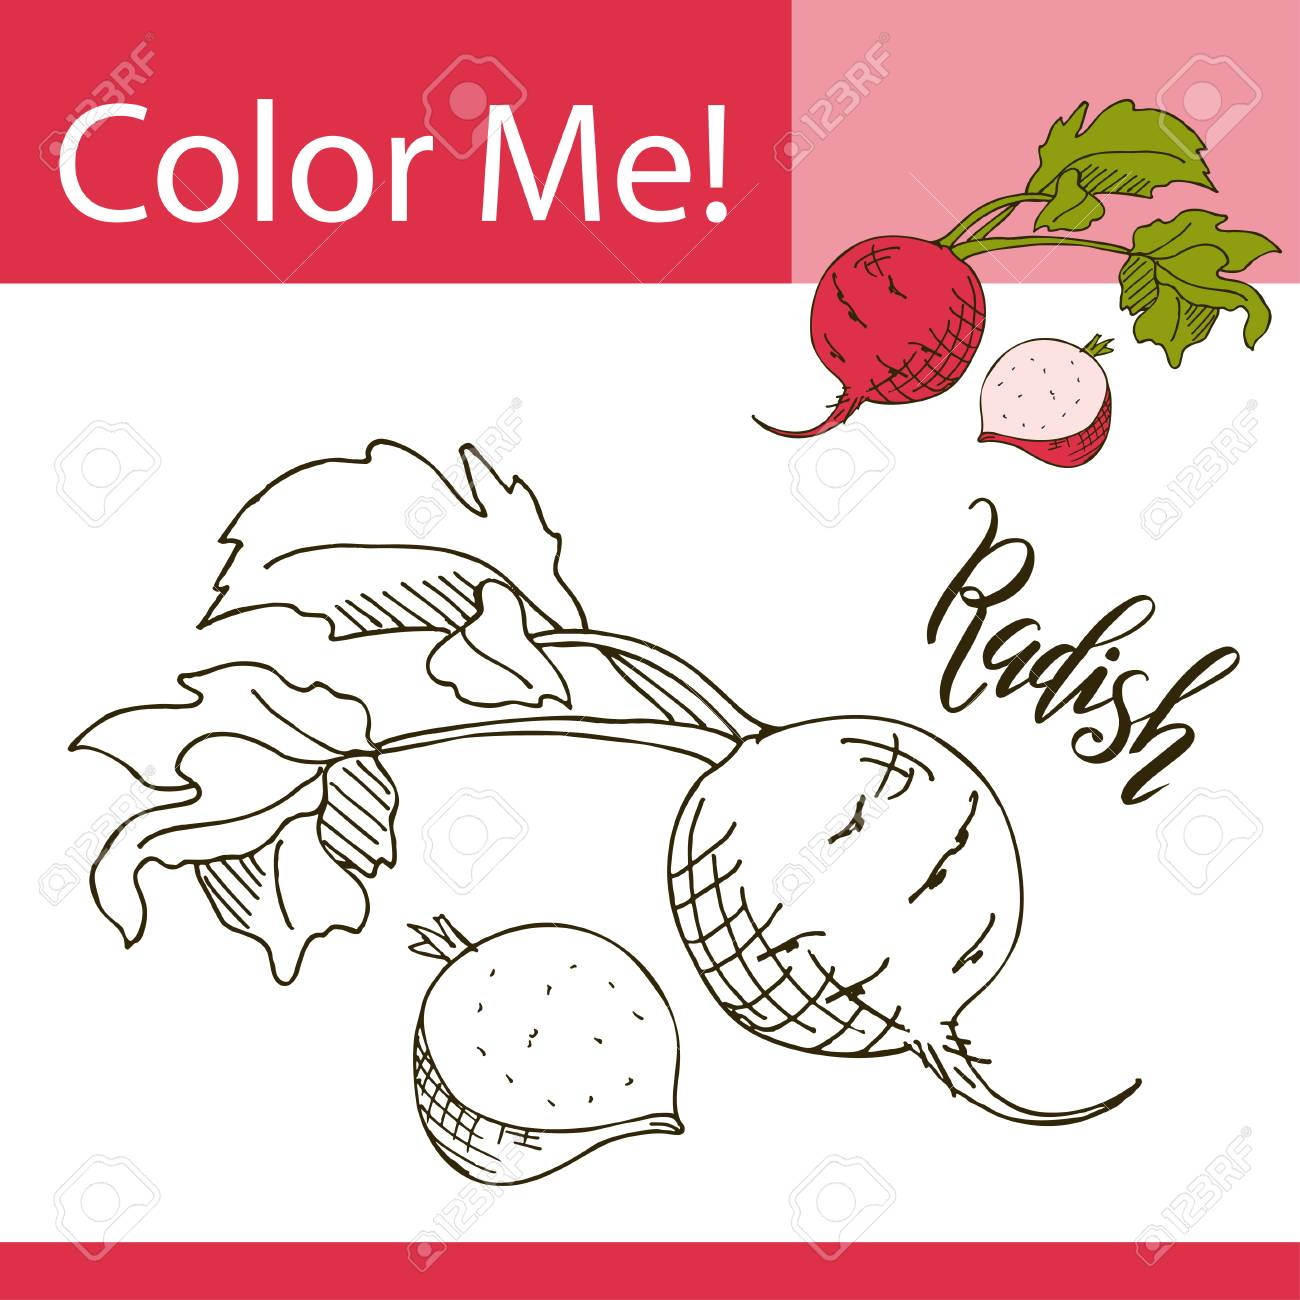 education coloring page with vegetable hand drawn vector illustration of radish stock vector